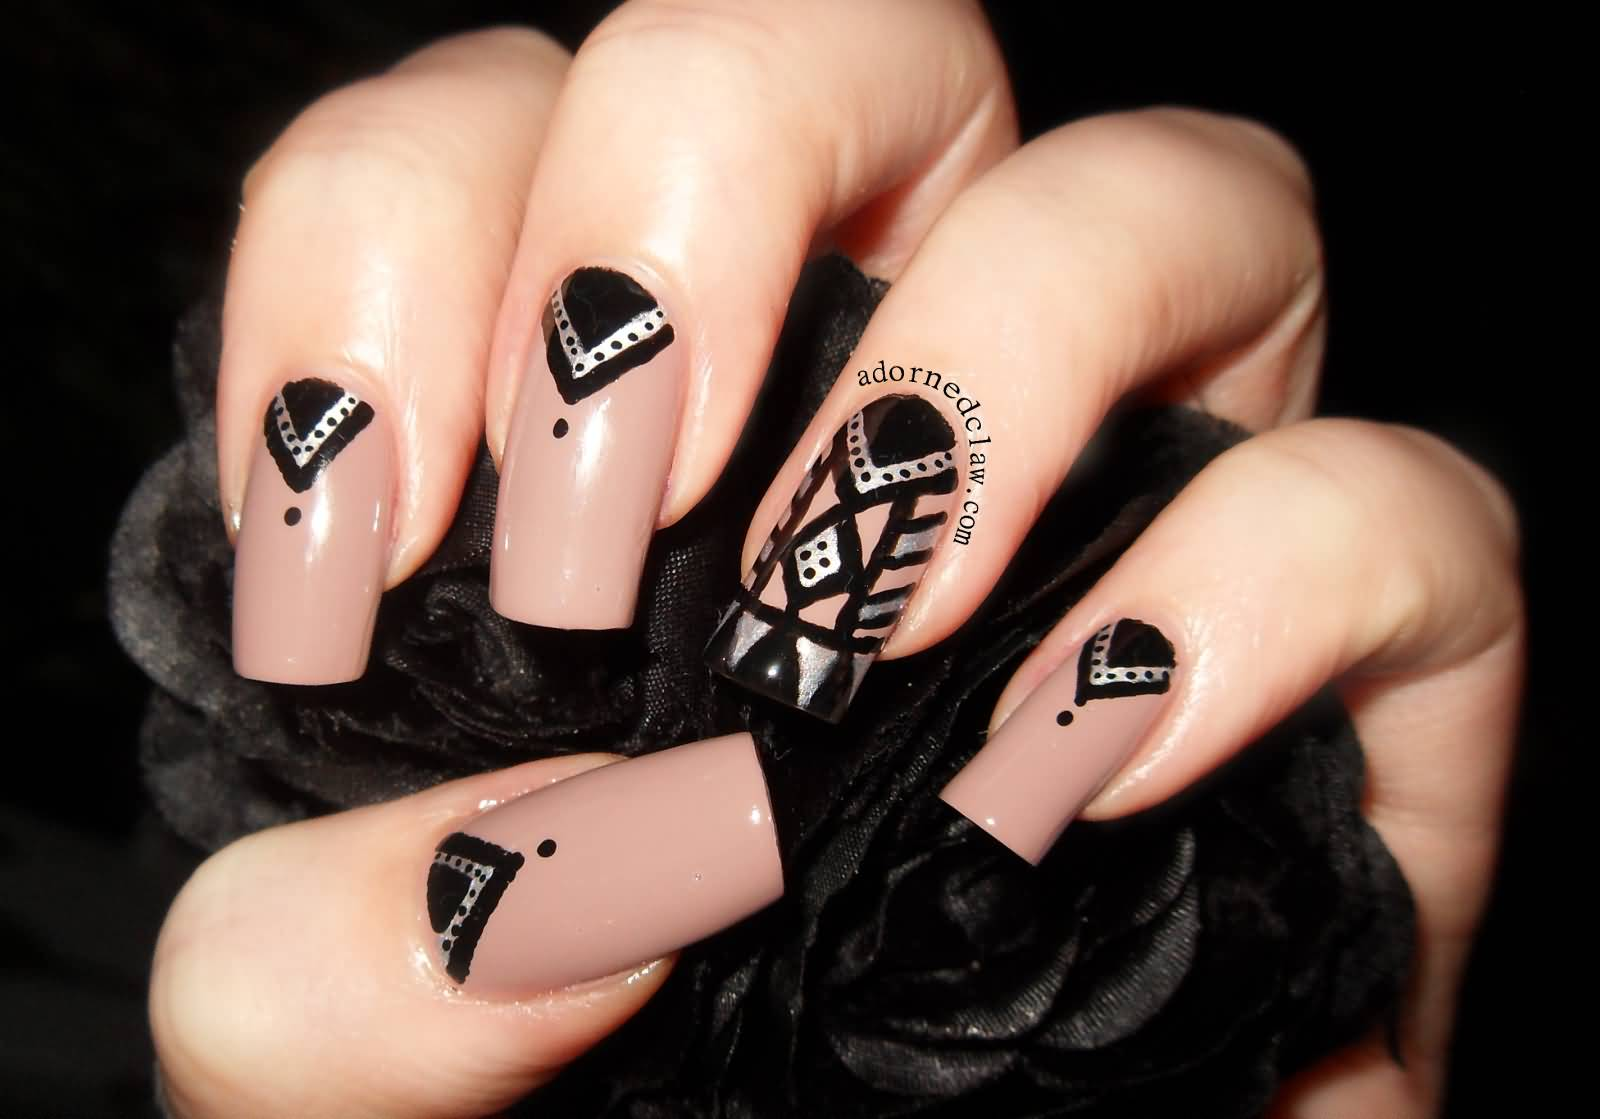 Tribal nail art ideas and designs for beginners fashion qe tribal nail art ideas and designs for beginners prinsesfo Choice Image